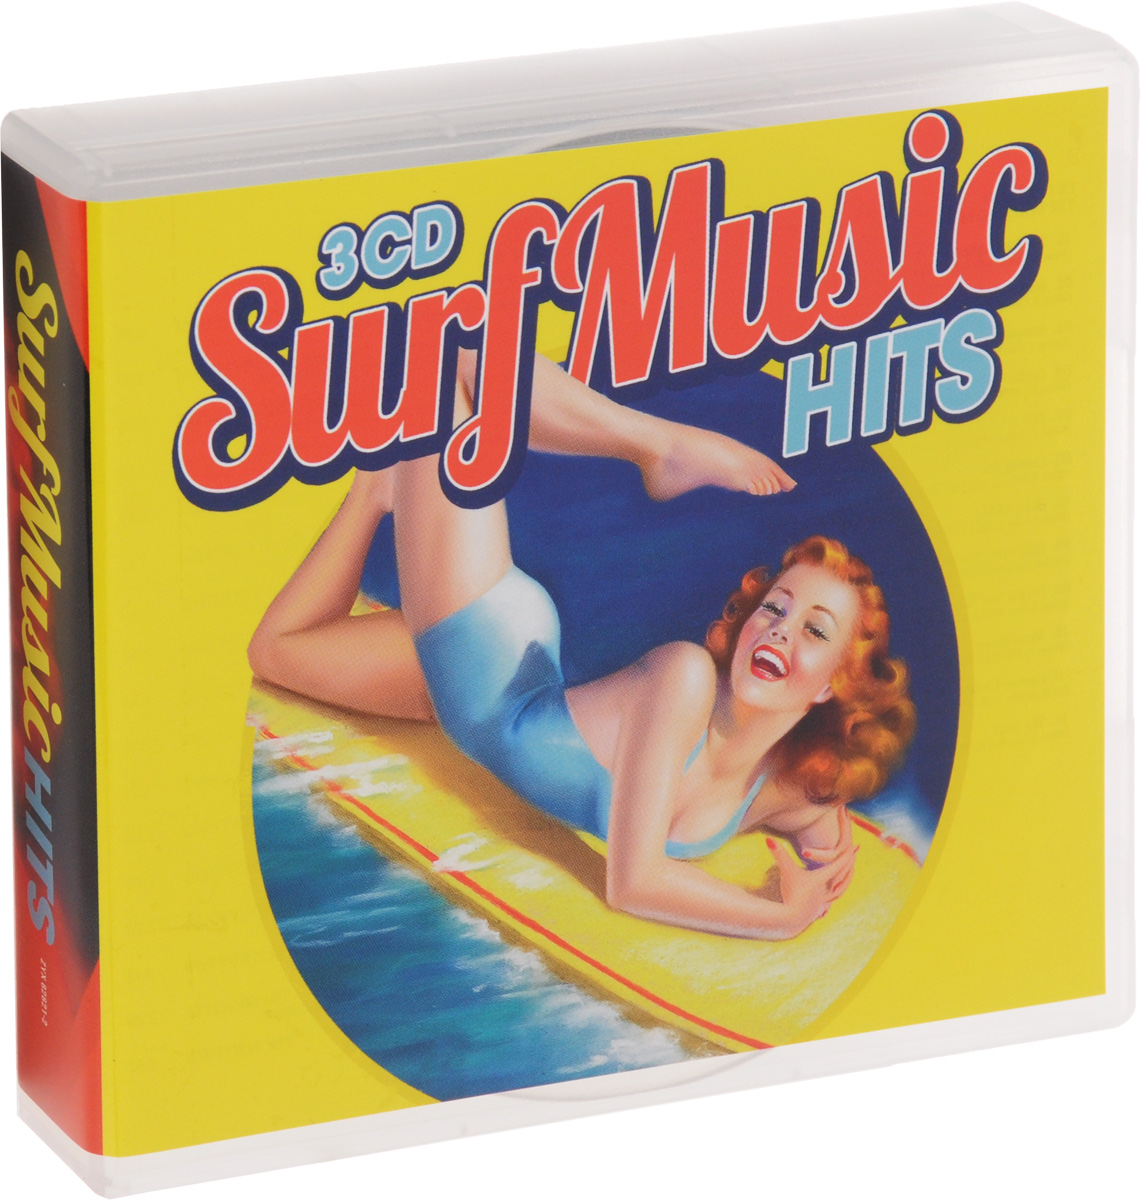 The Beach Boys,The Ventures,Dick Dale & His Del-Tones,Bob Vaught,The Renegaids,The Challengers,The Tornadoes,Shean,Jenkins,Jim Waller,The Deltas,Gene,The Esquires,The Surfaris,The Rockin' Rebels,The Dave Myers Effect,Slacktone,Les Jr. Brown Surf Music Hits (3 CD) the beach boys the beach boys greatest surf hits